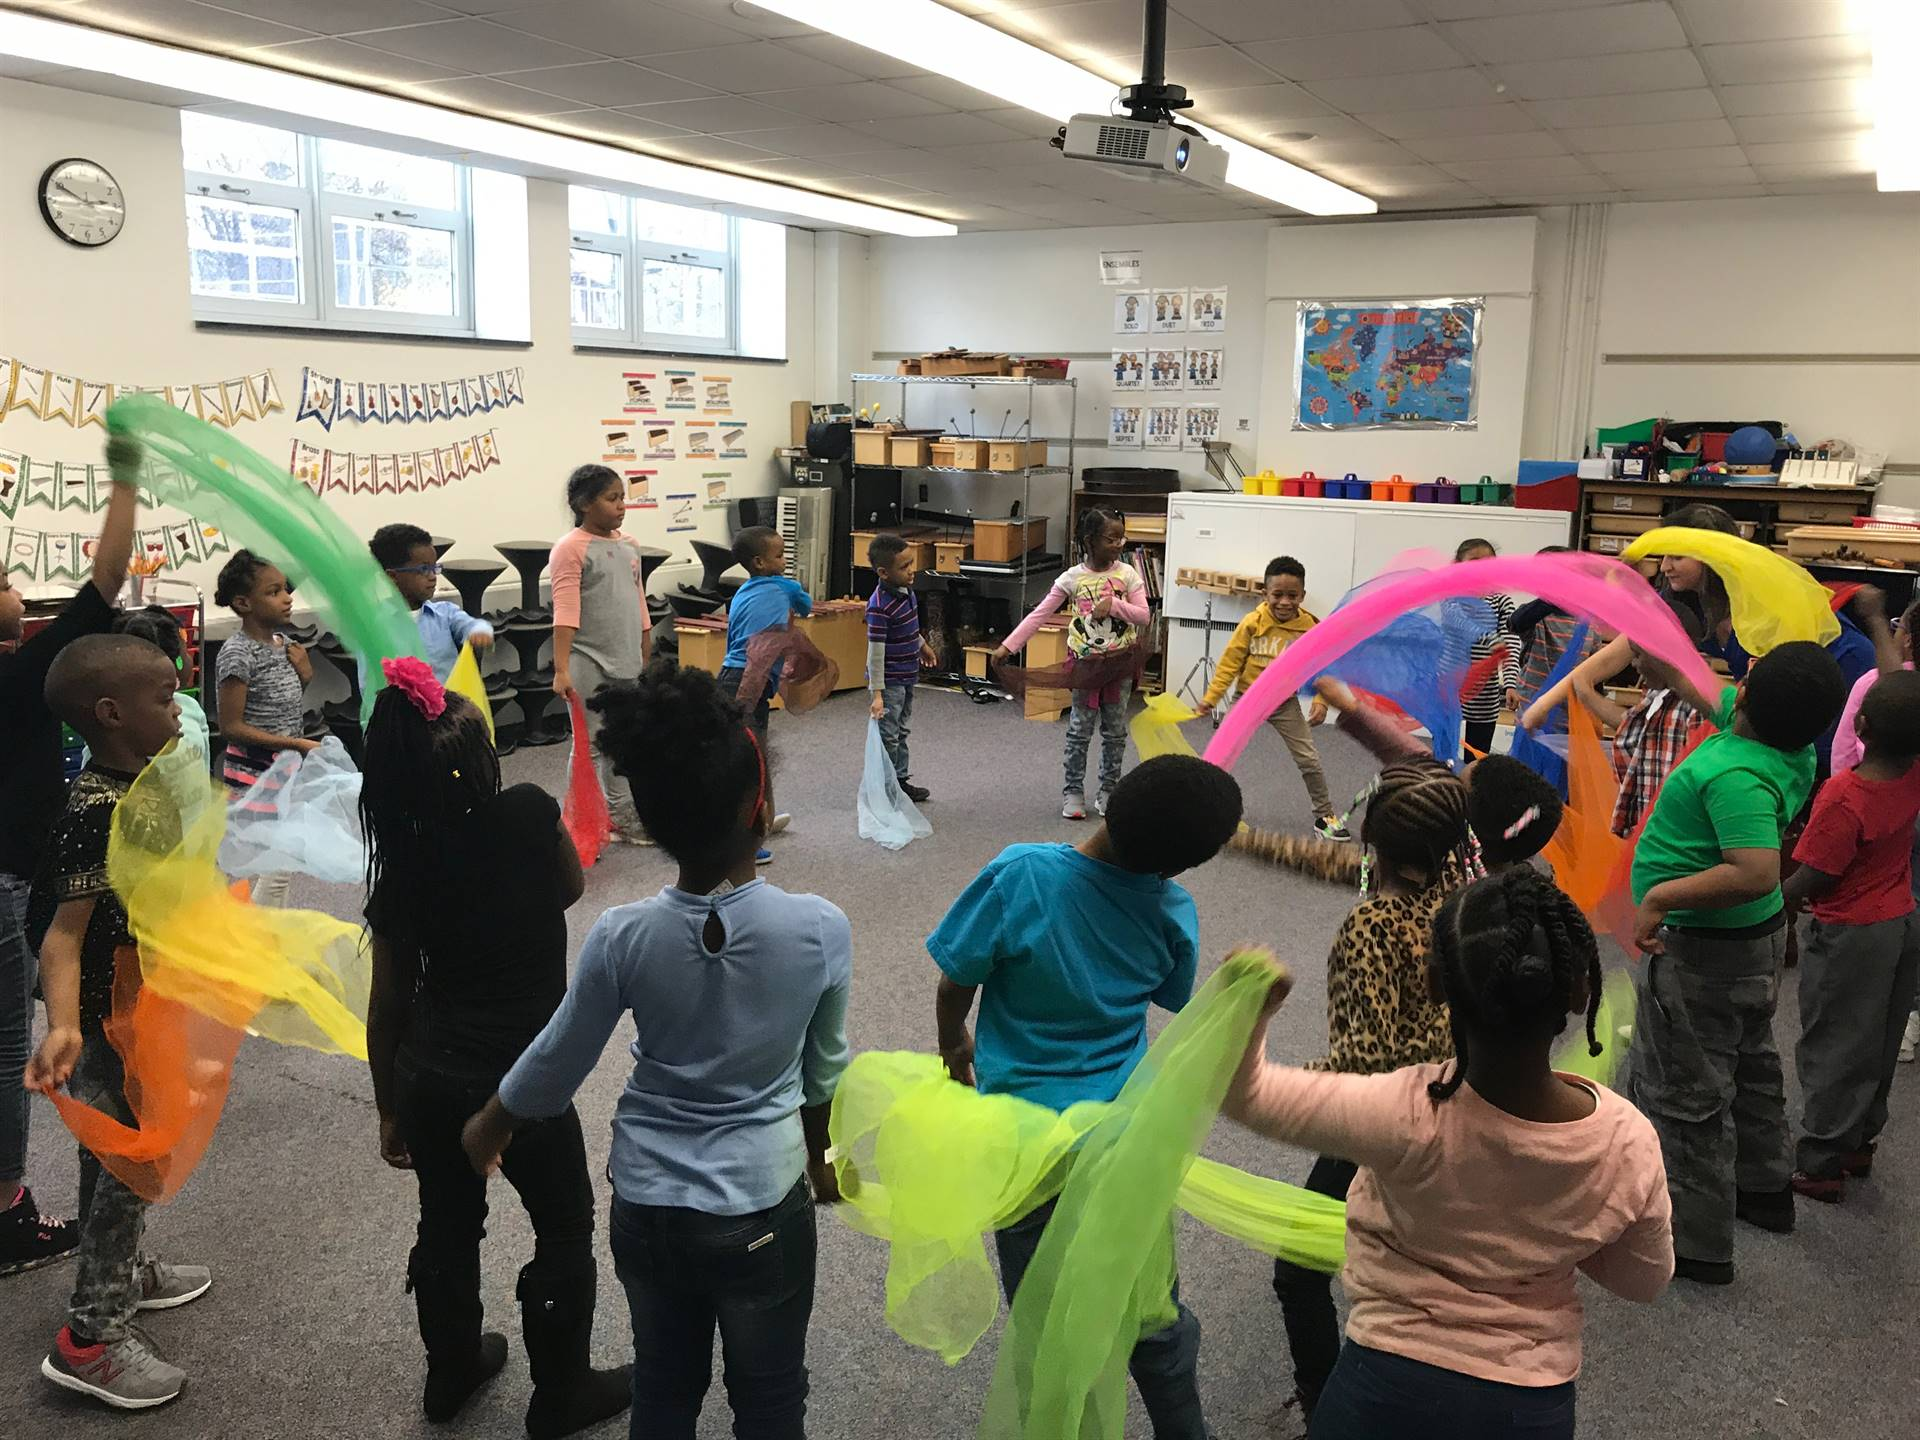 Scarf movement to music in 1st grade